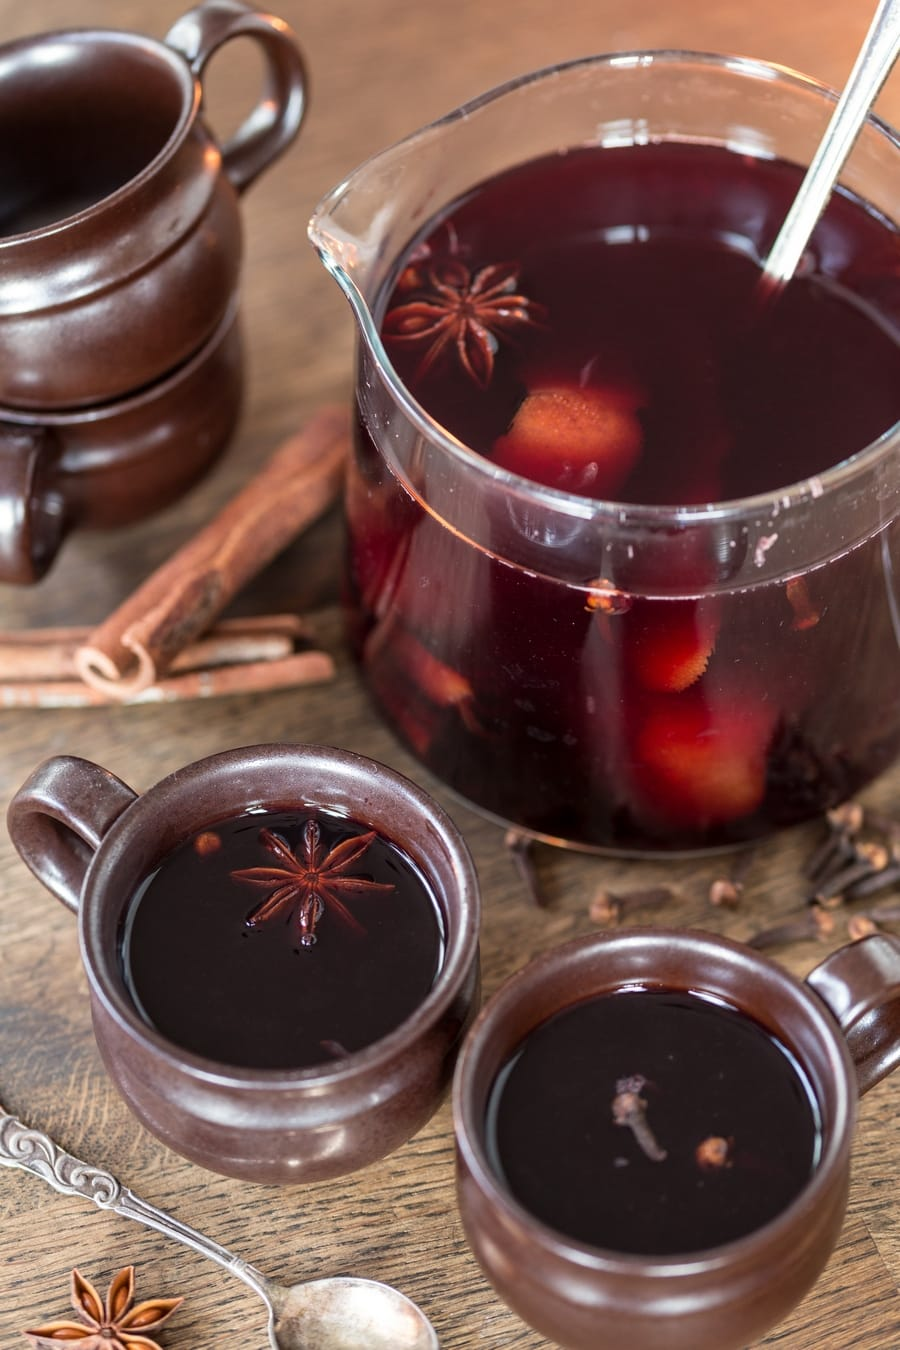 Italian mulled wine vin brulé served in two brown mugs.